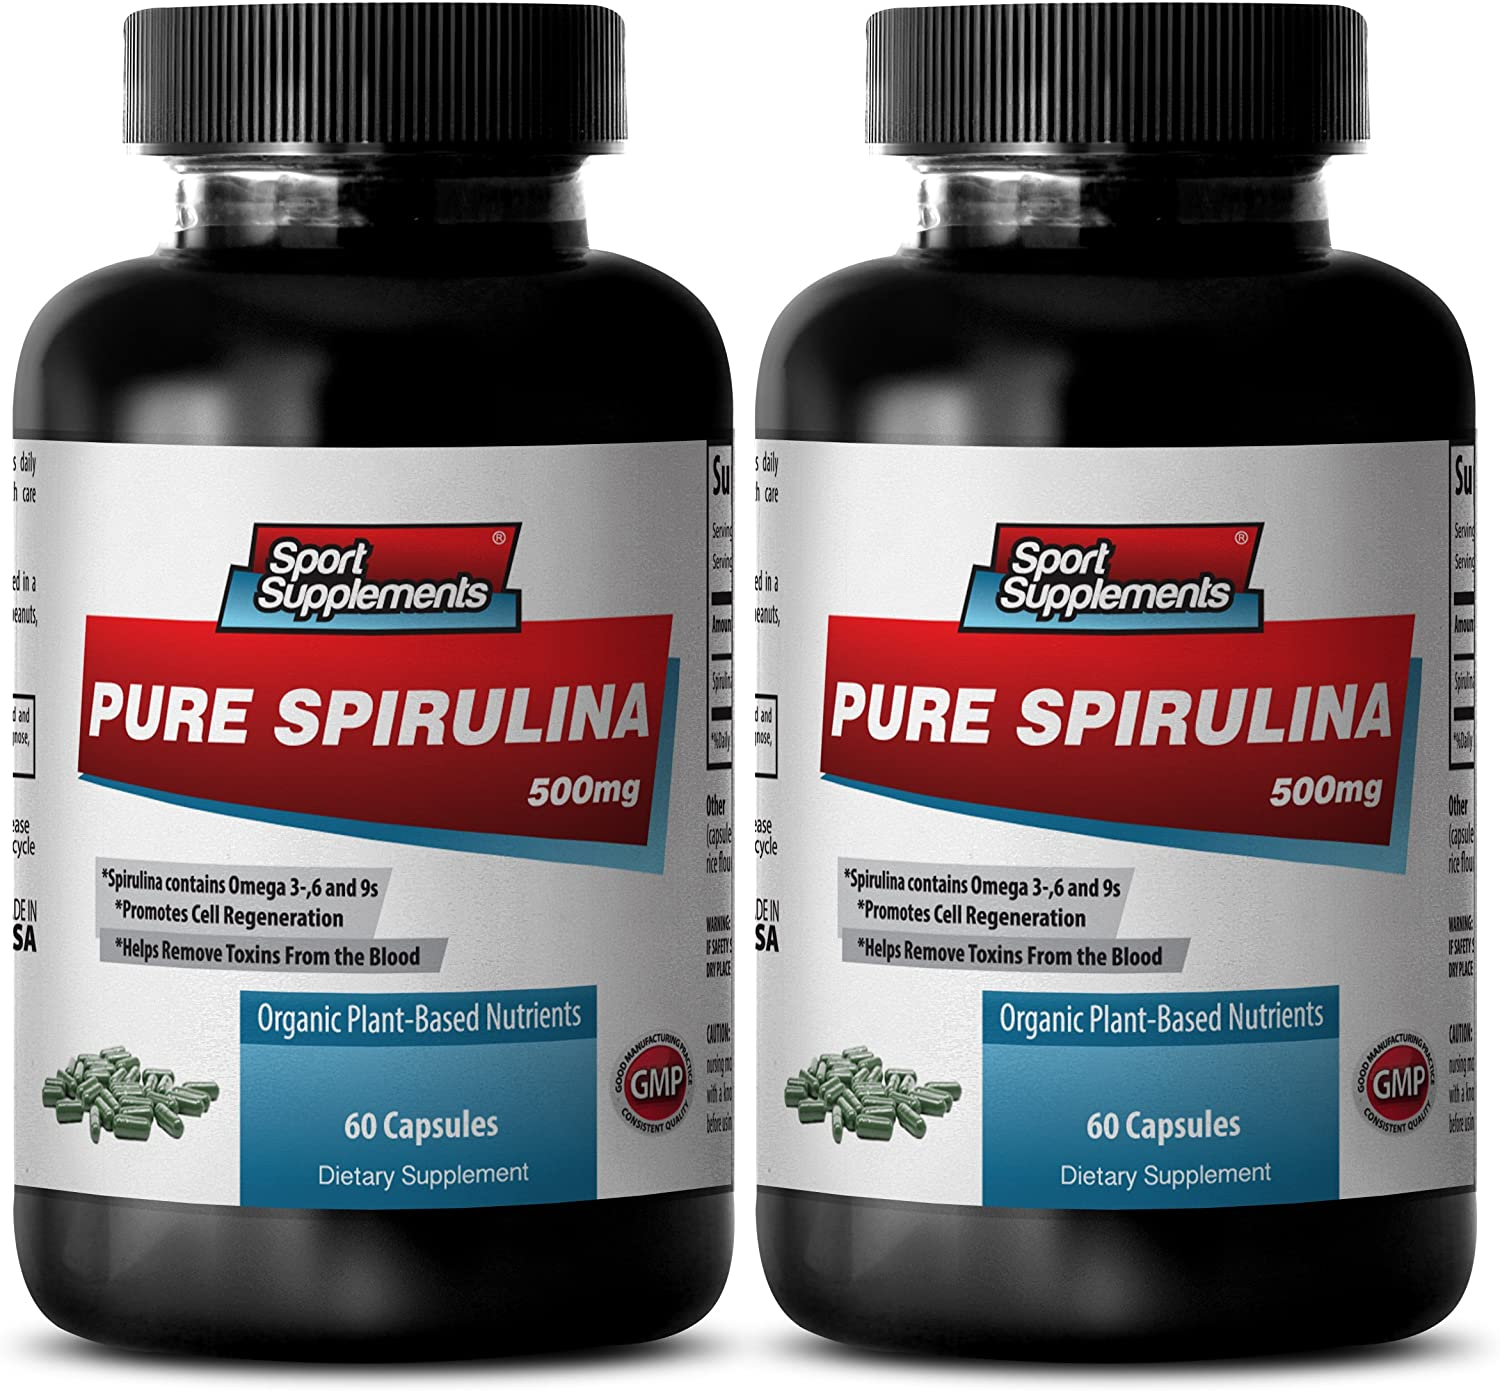 Natural Brain Function Support for Memory Focus & Clarity - Pure SPIRULINA 500mg - Blue Green Algae spiralina - 2 Bottles 120 Tablets